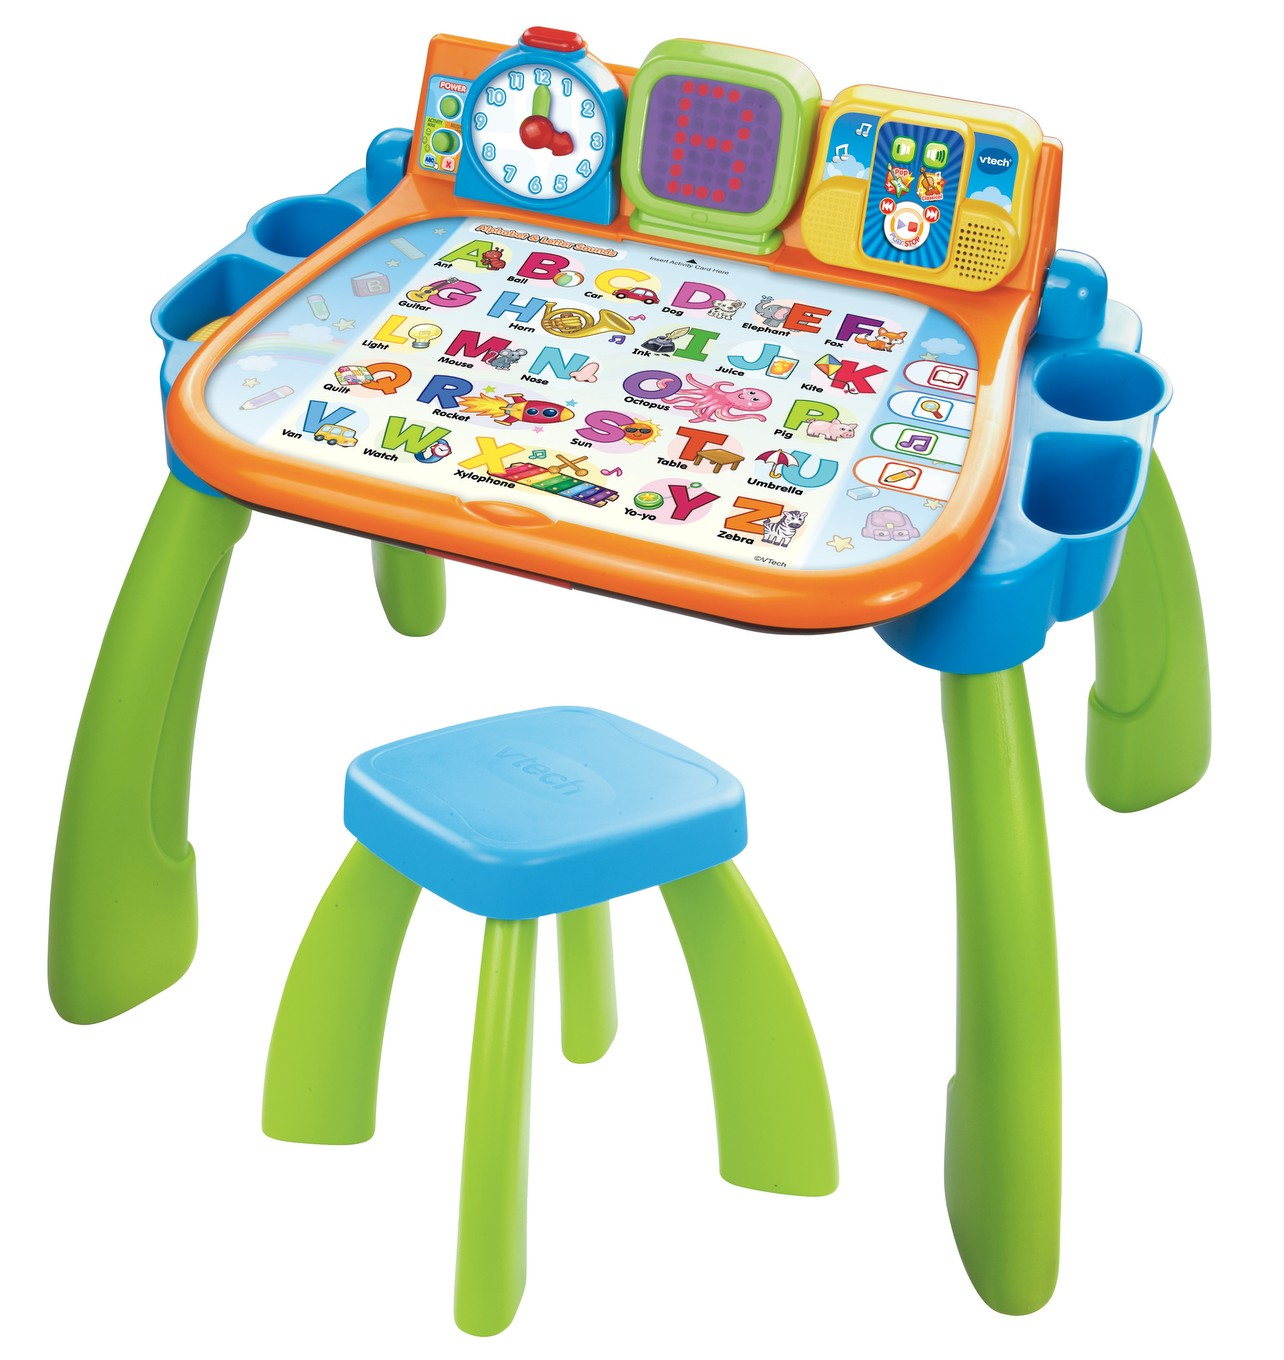 Touch Amp Learn Activity Desk Kids Desk Vtech